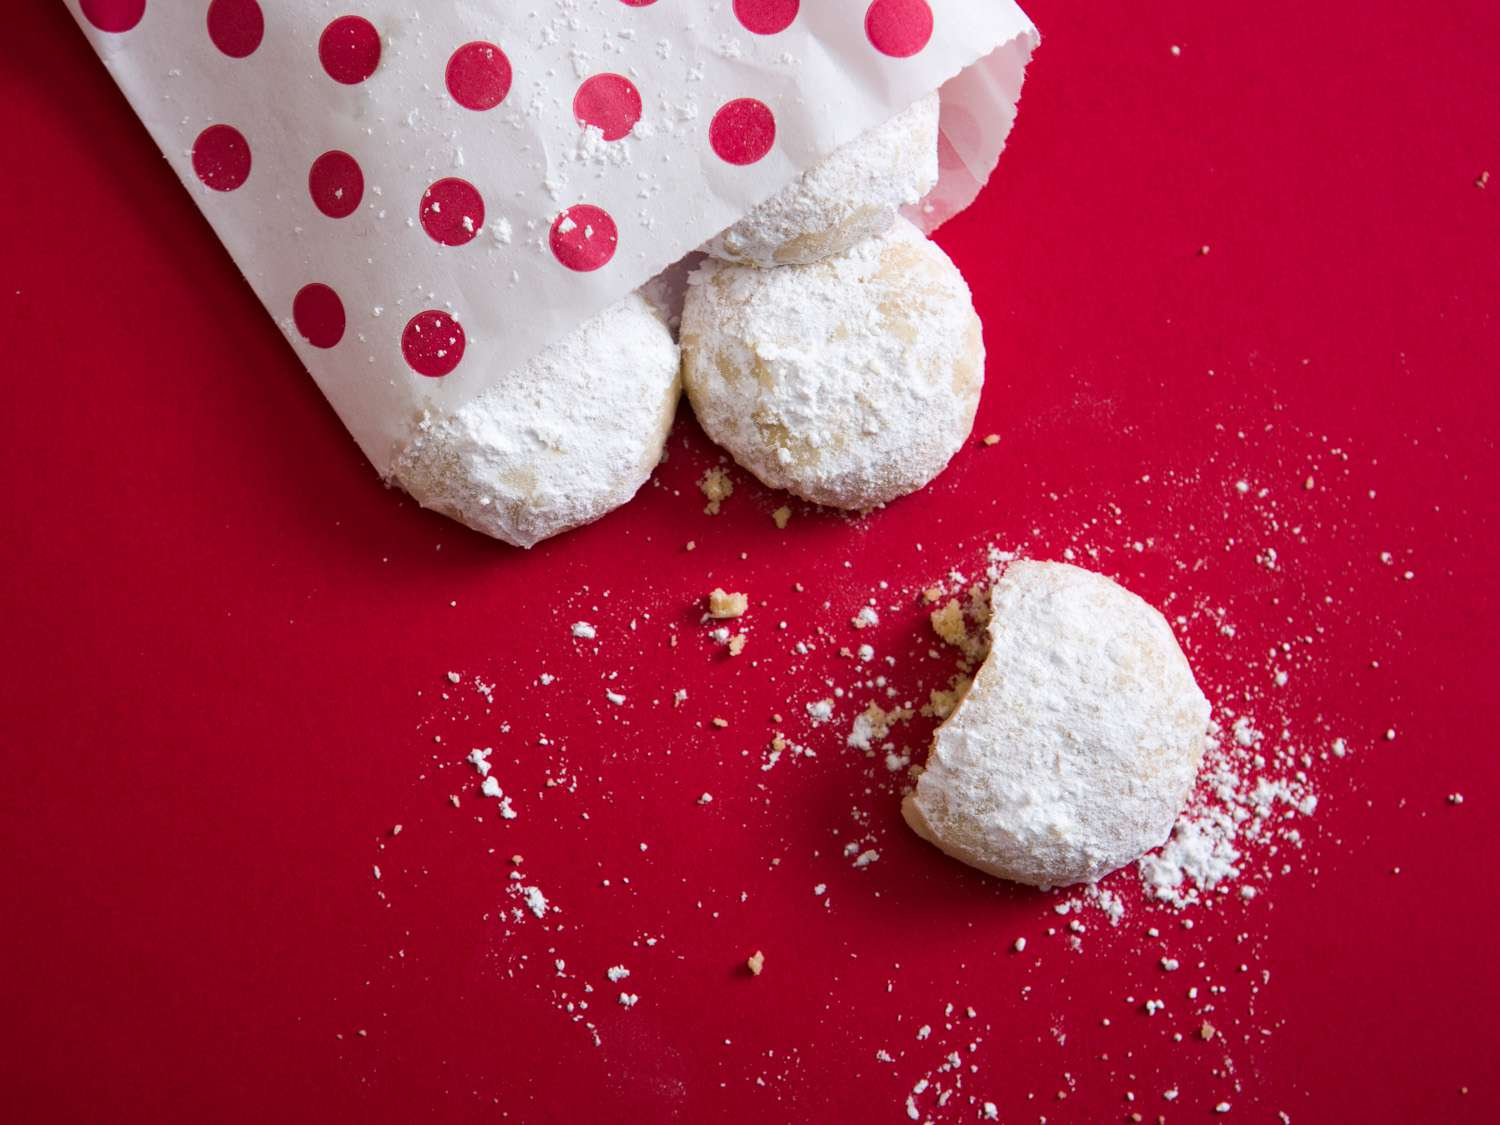 20171129-holiday-cookie-recipes-roundup-02.jpg